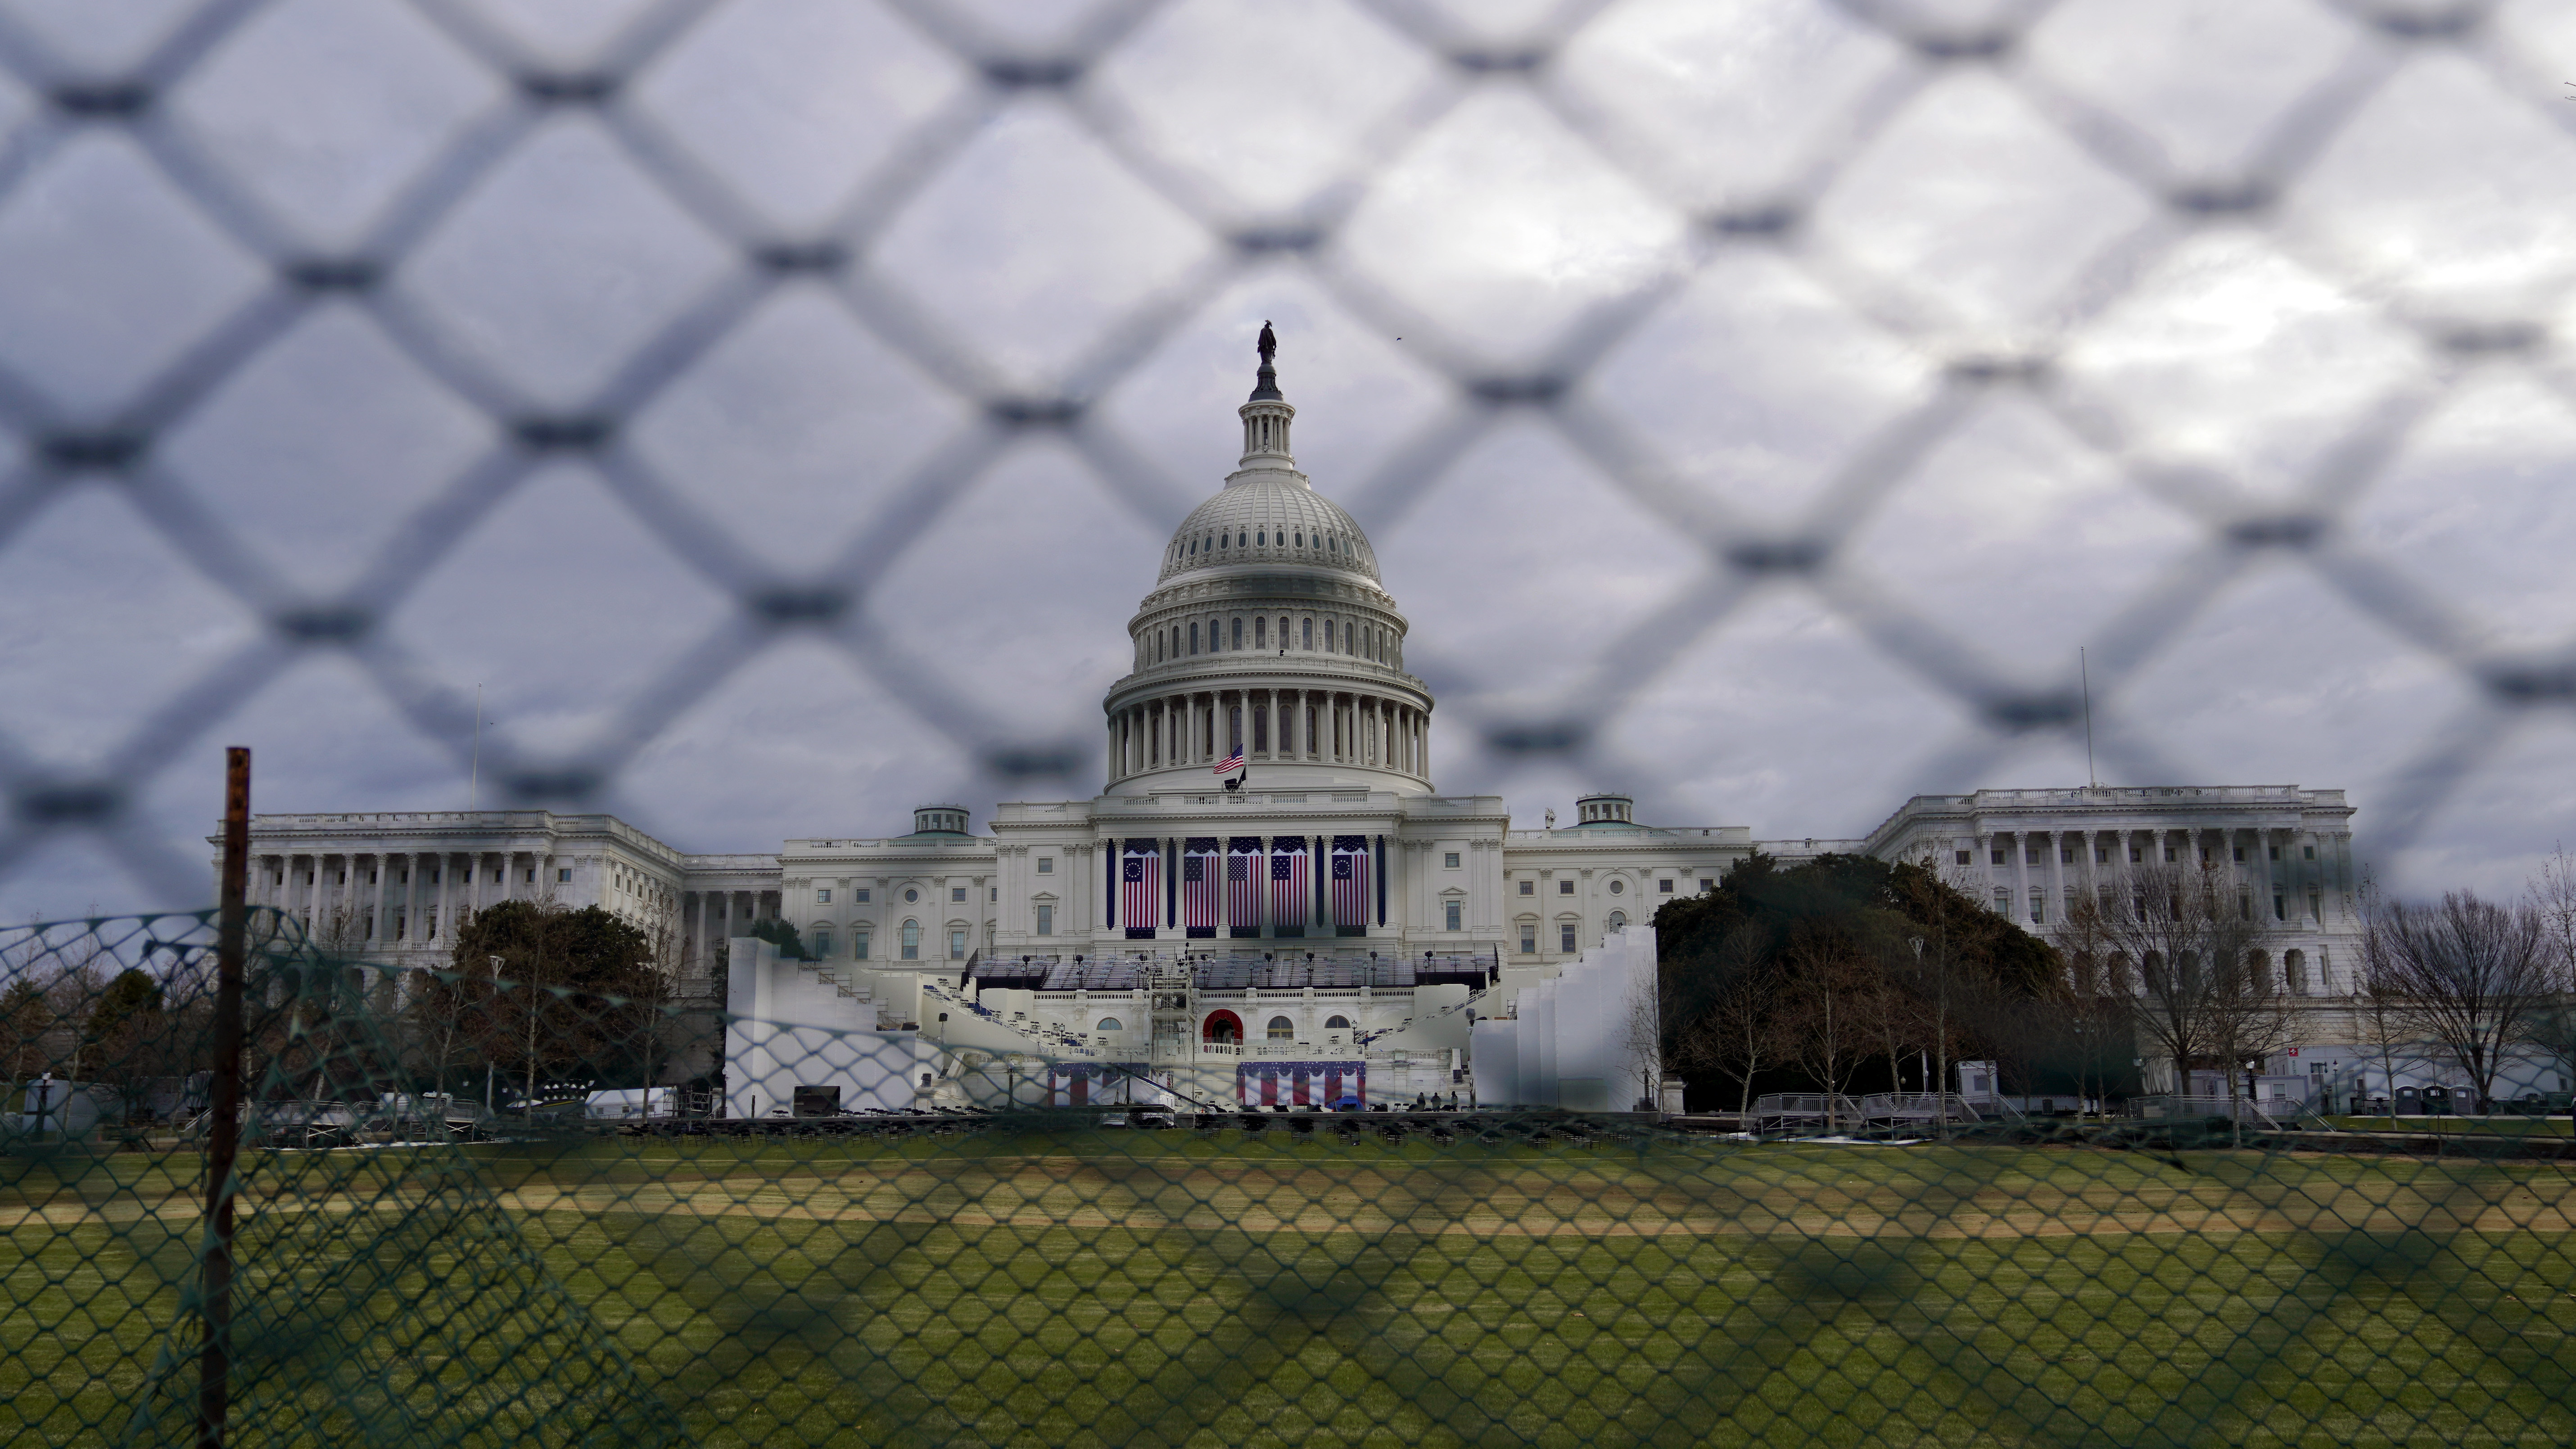 The U.S. Capitol is visible behind fences on Sunday following the Jan. 6 riot by pro-Trump extremists. This week's events will have the largest security presence of any inauguration in U.S. history.